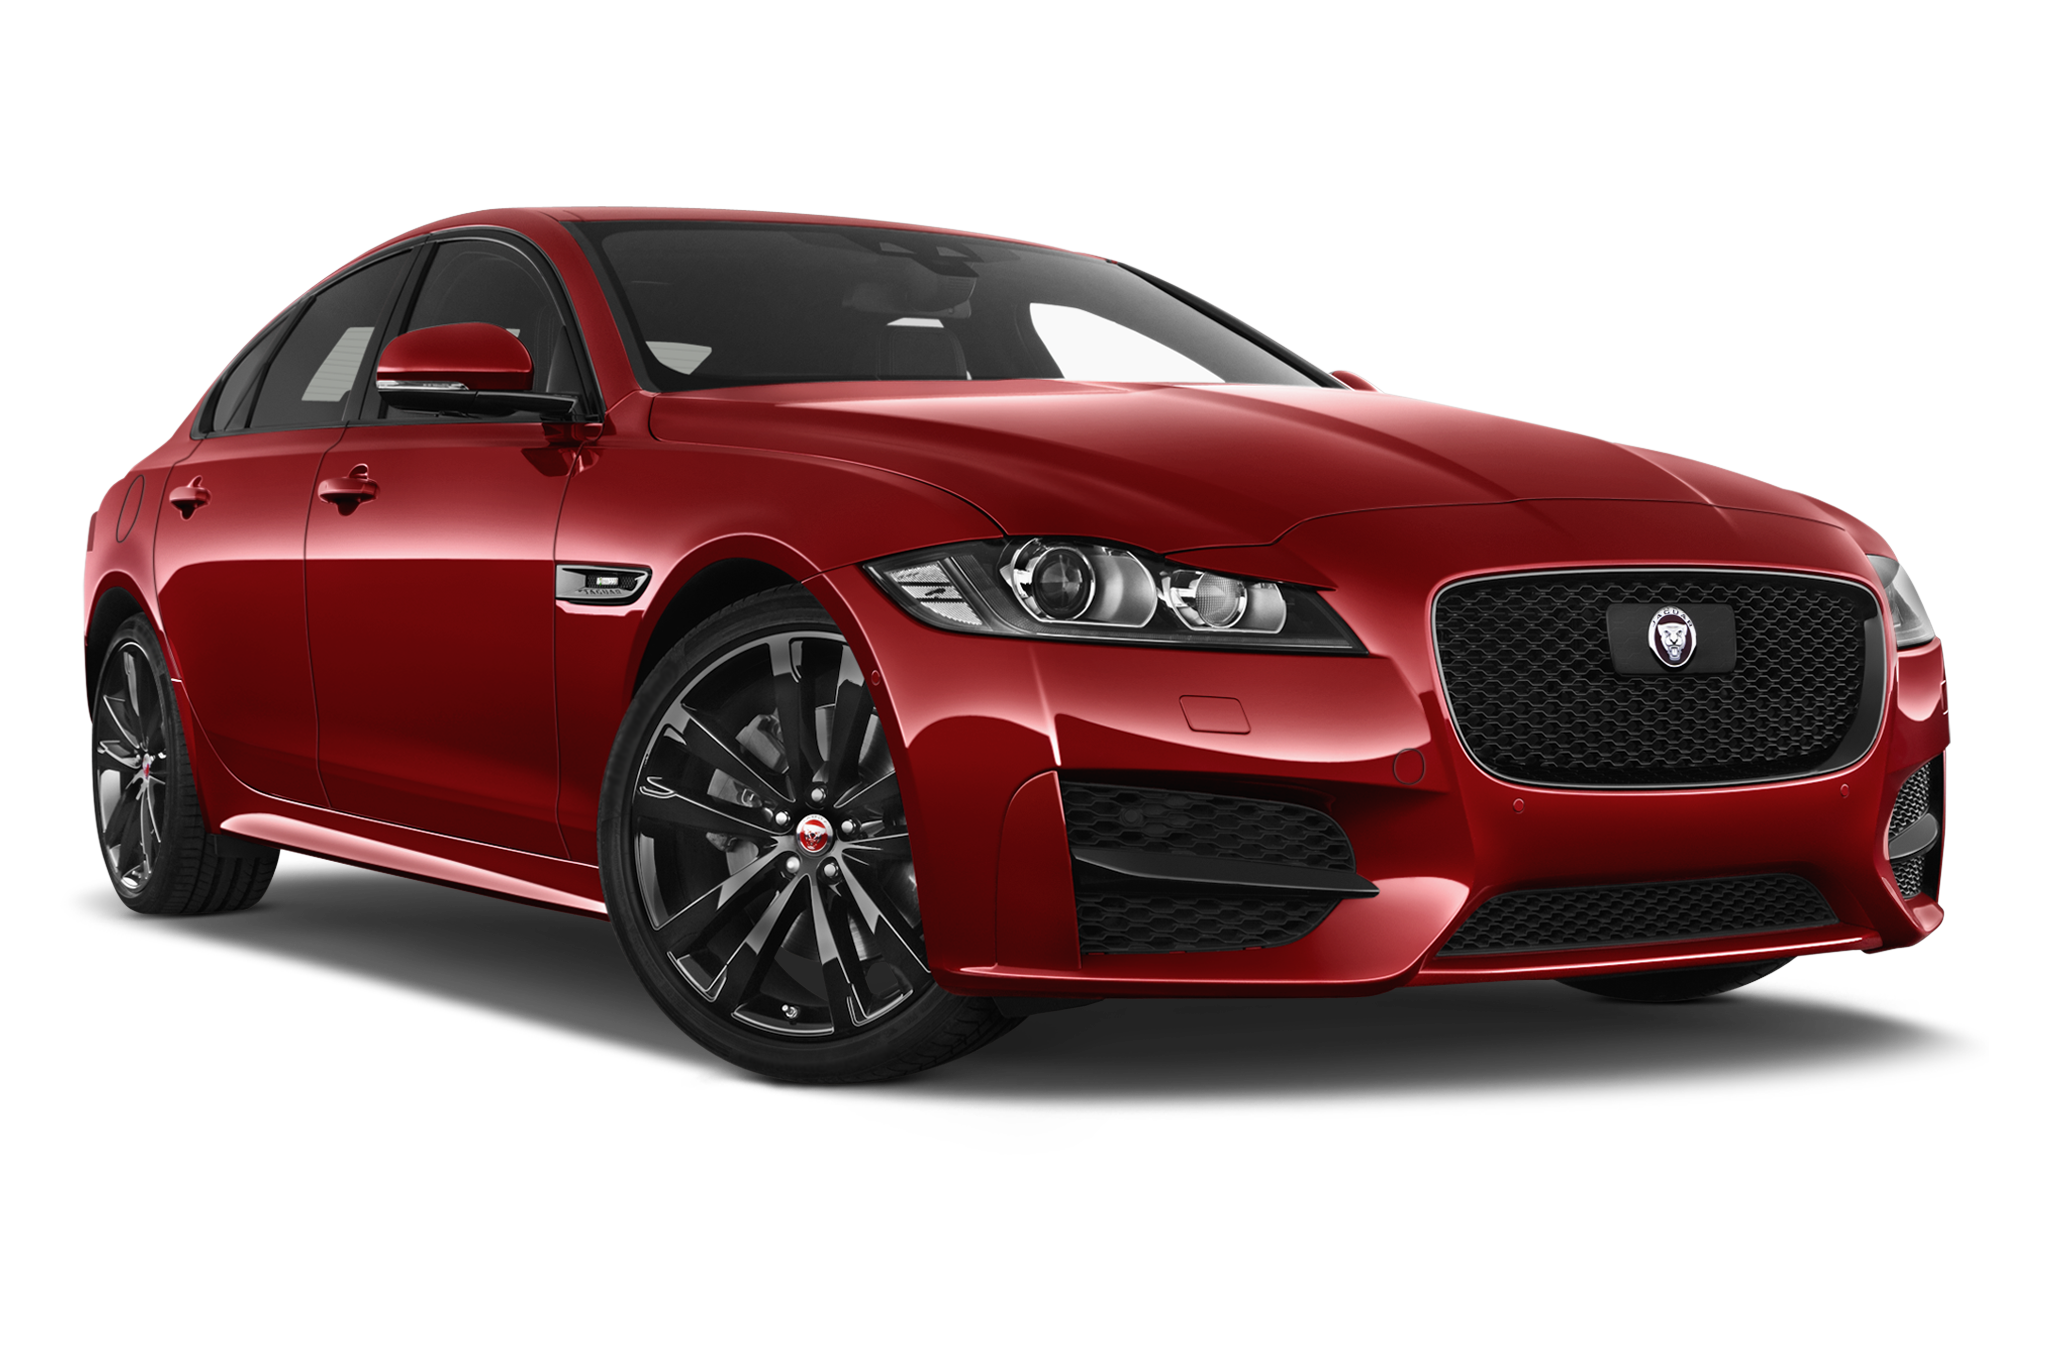 Jaguar XF company car front view